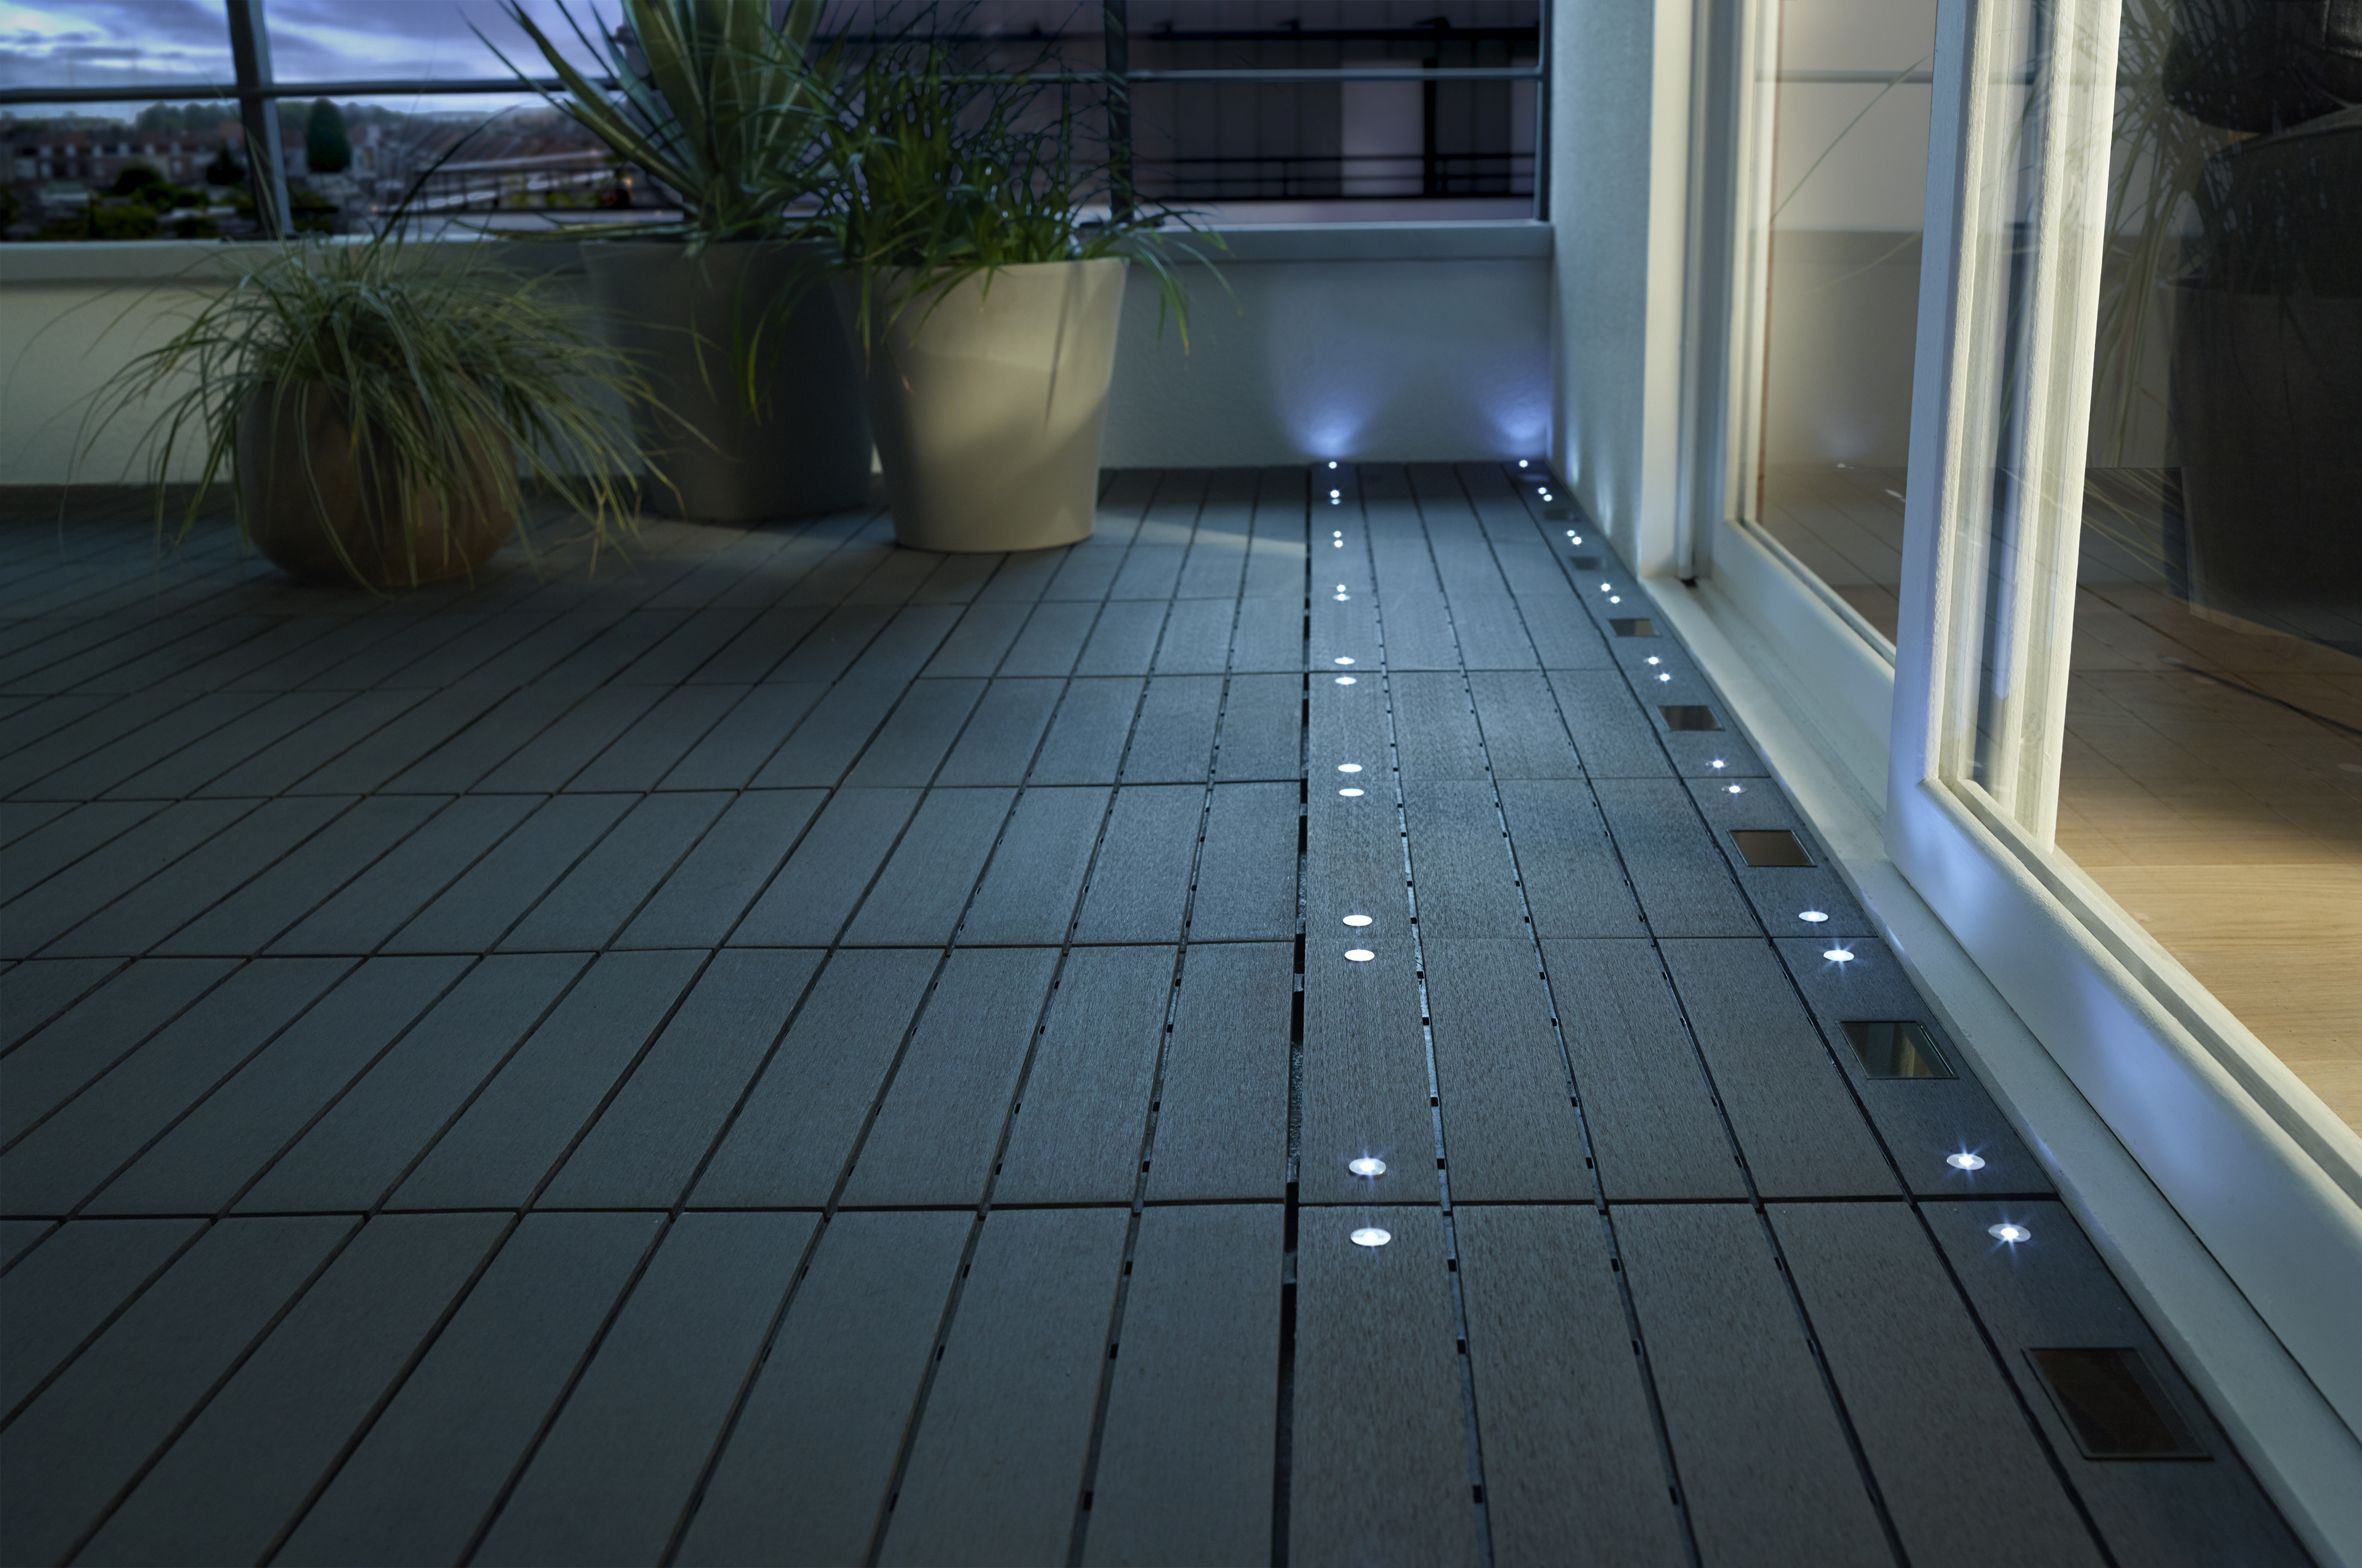 Dalles Exterieur Dalle Balcon Emboitable Composite Avec Led Blooma 30 X 30